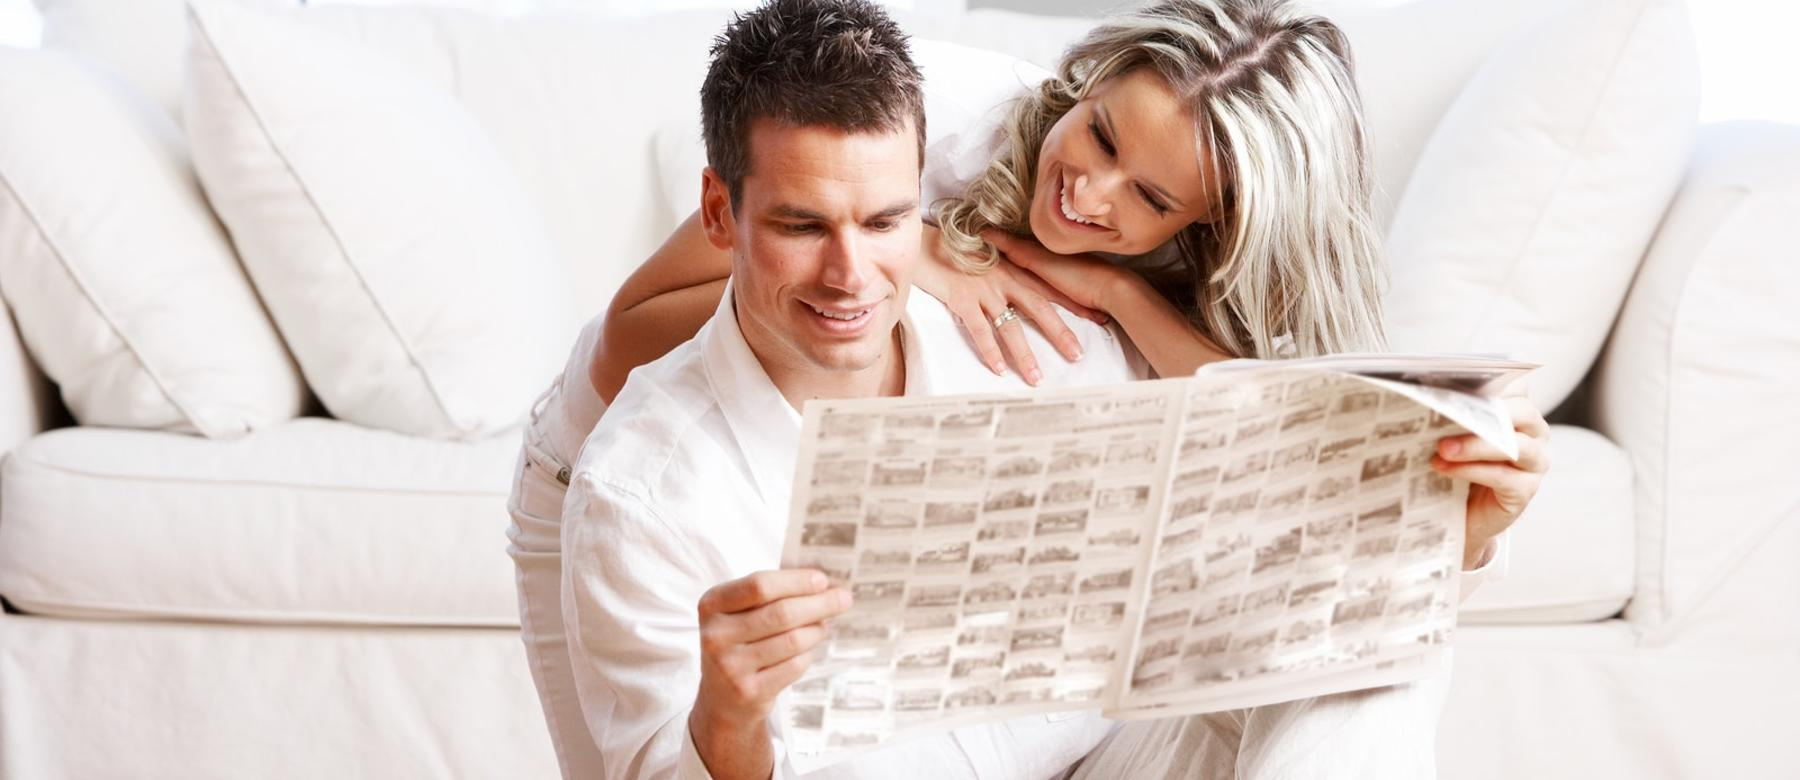 Dating services nz